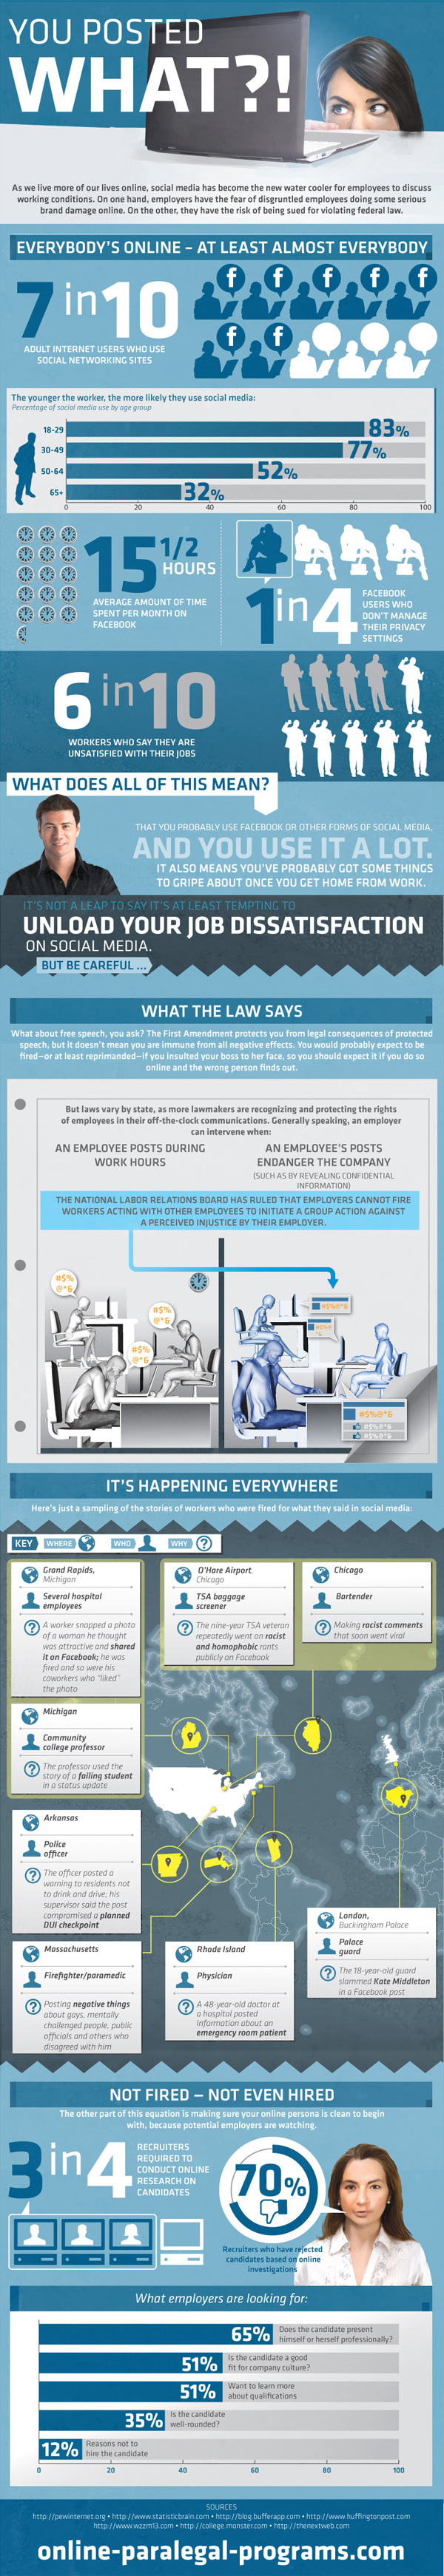 Social Media at Workplace-Infographic